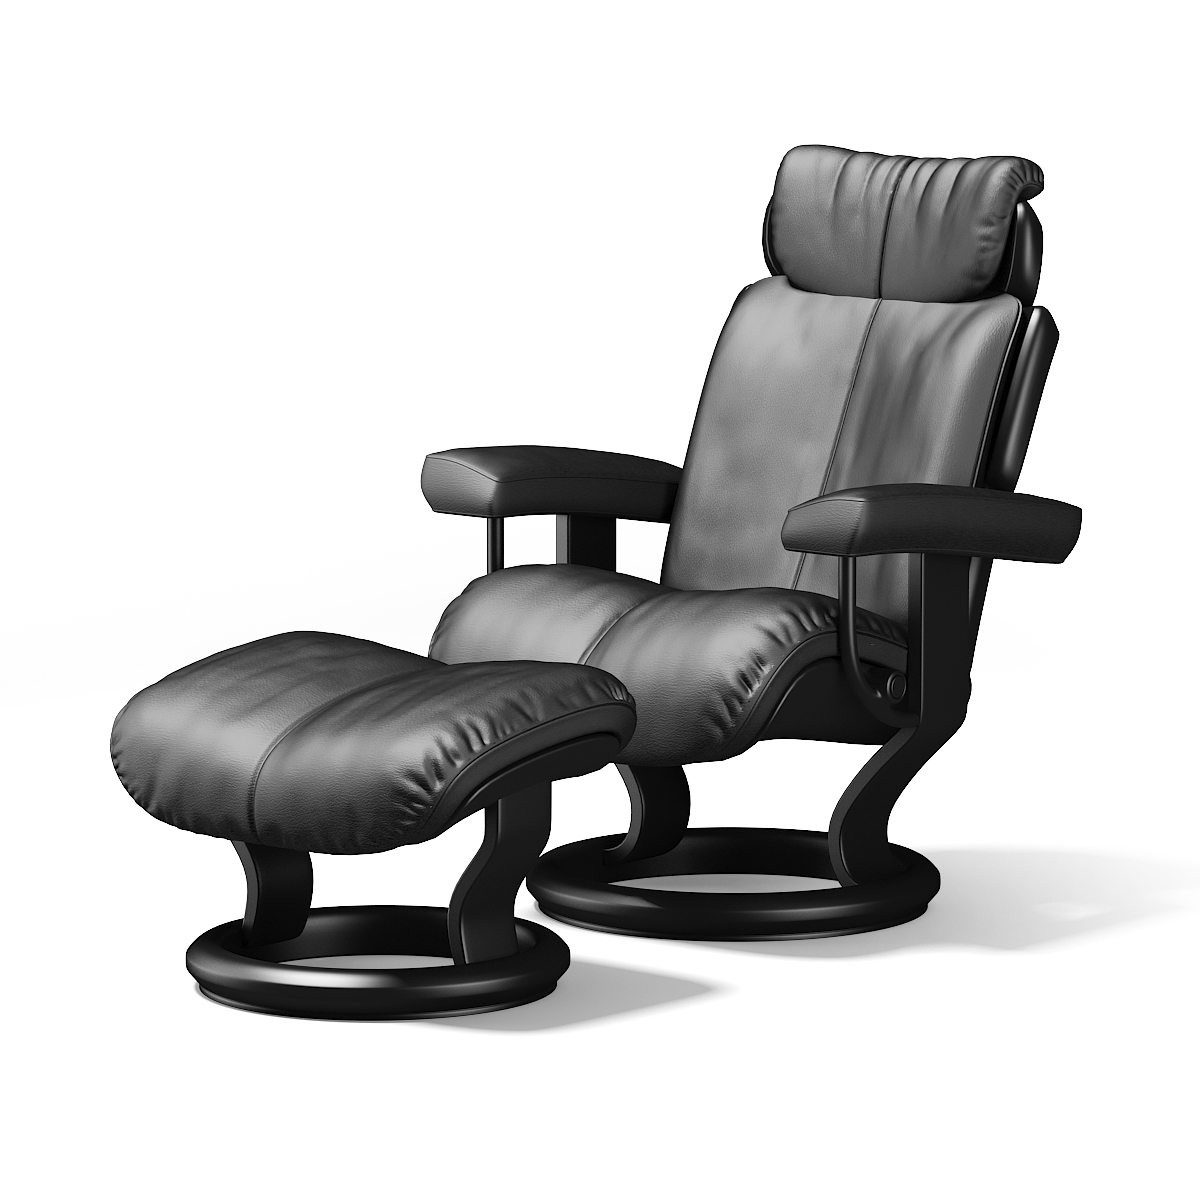 Attirant Black Leather Chair With Footrest